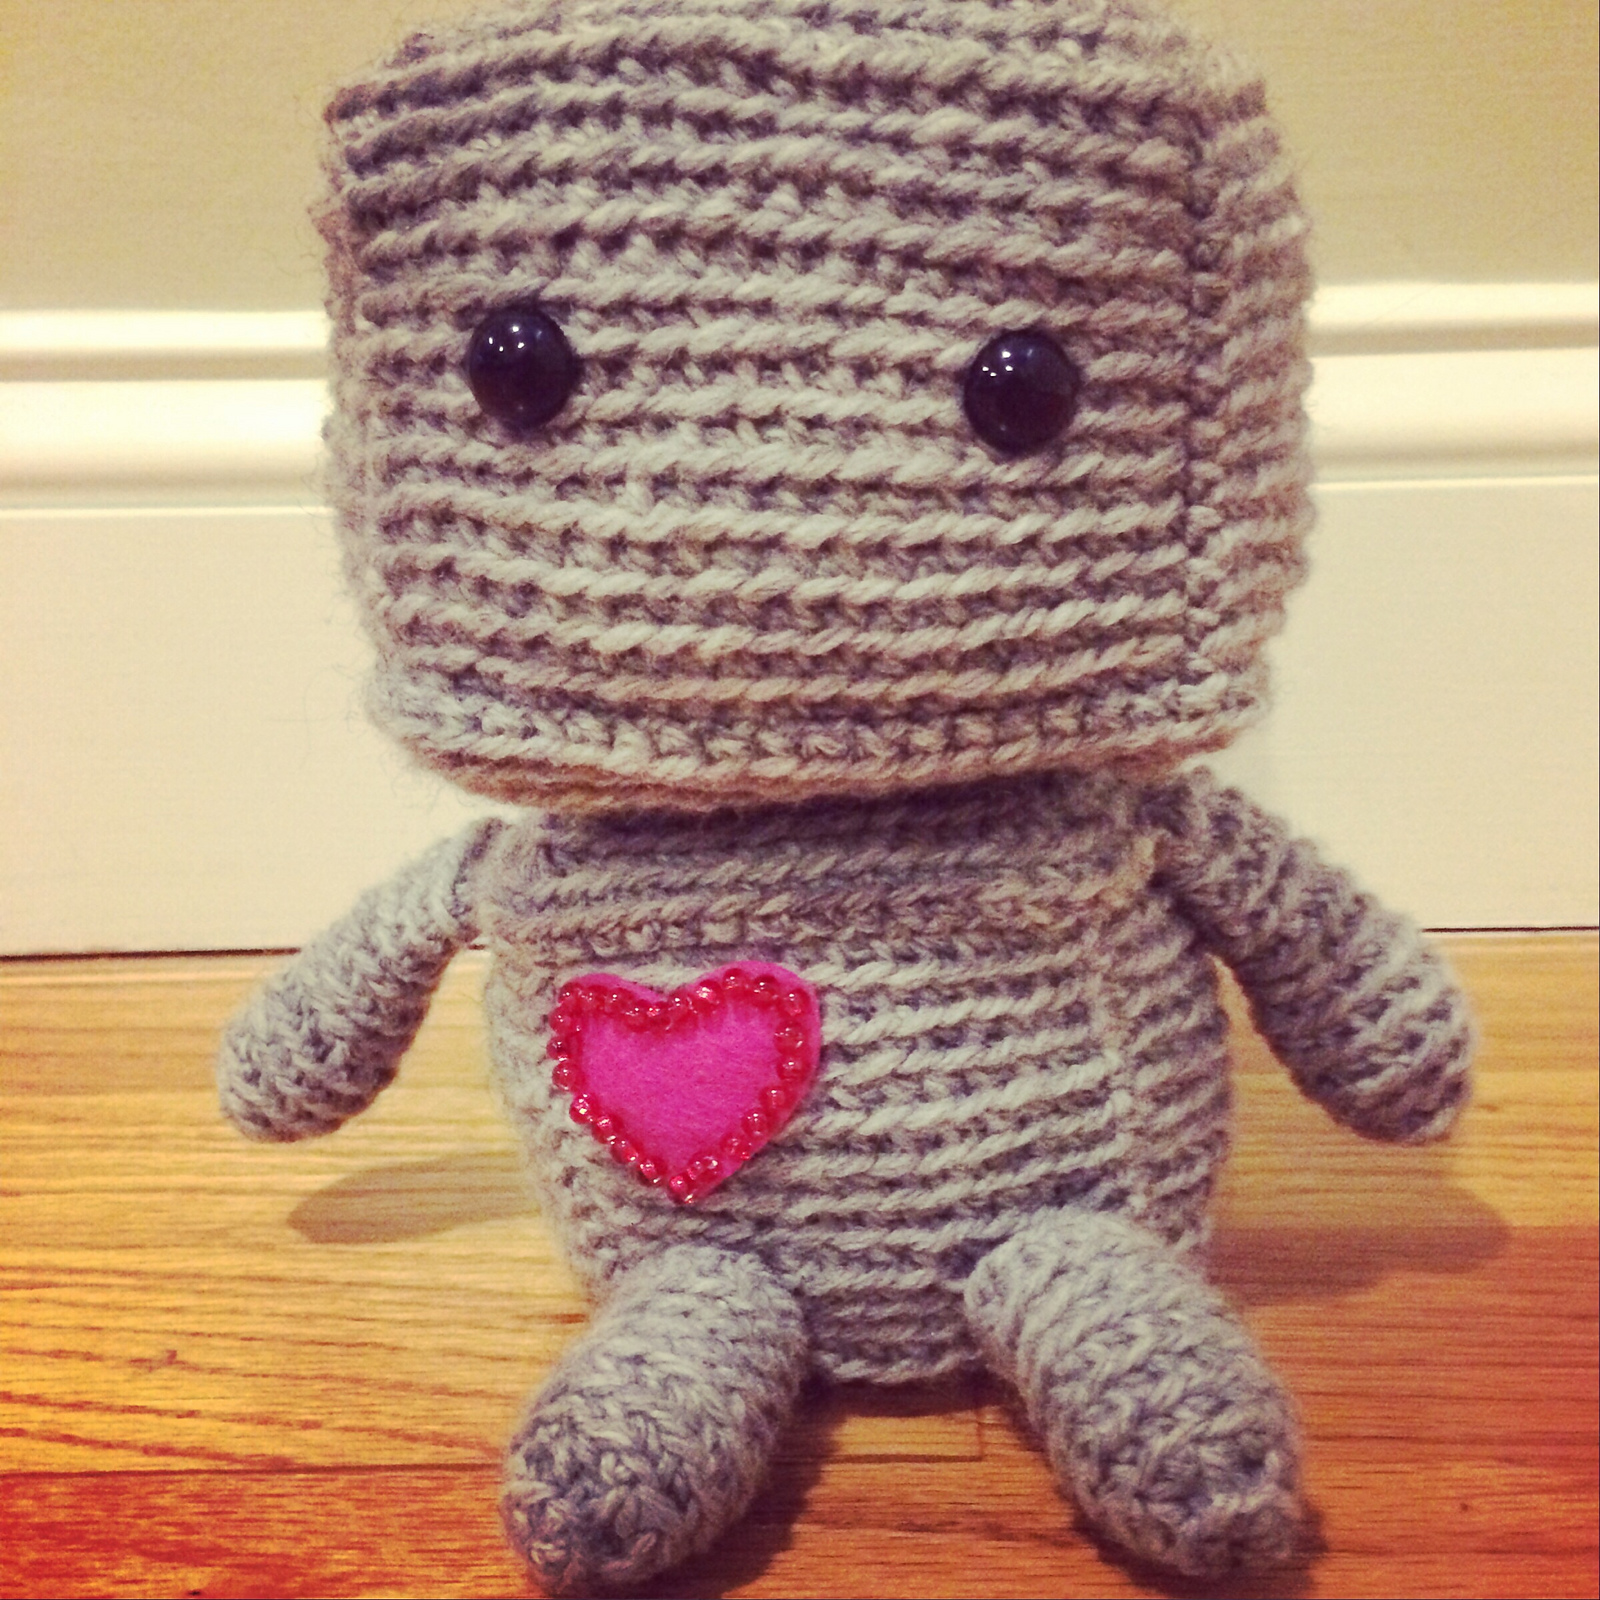 Amigurumi Robot Crochet Patterns : The Spicy Knitter: August 2014